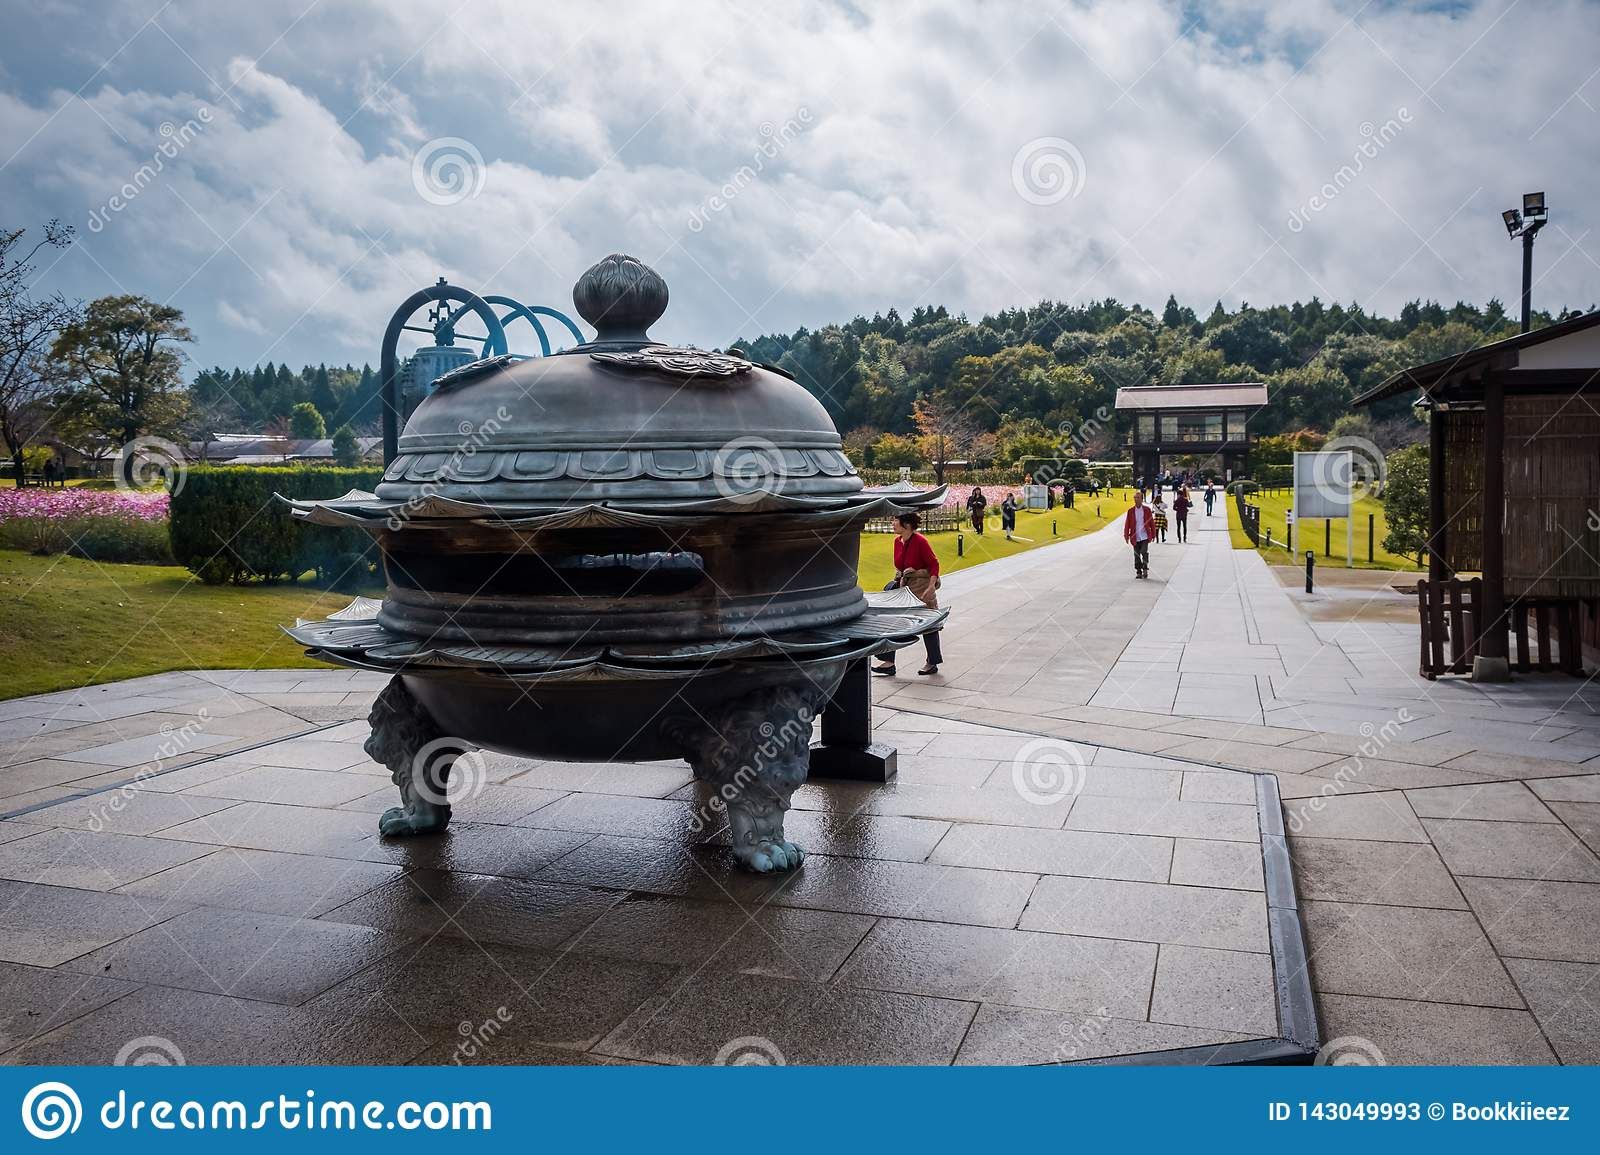 The old-Japanese style incense burner for praying to Ushiku Daibutsu, is the largest Buddha statue in the world, Japan.